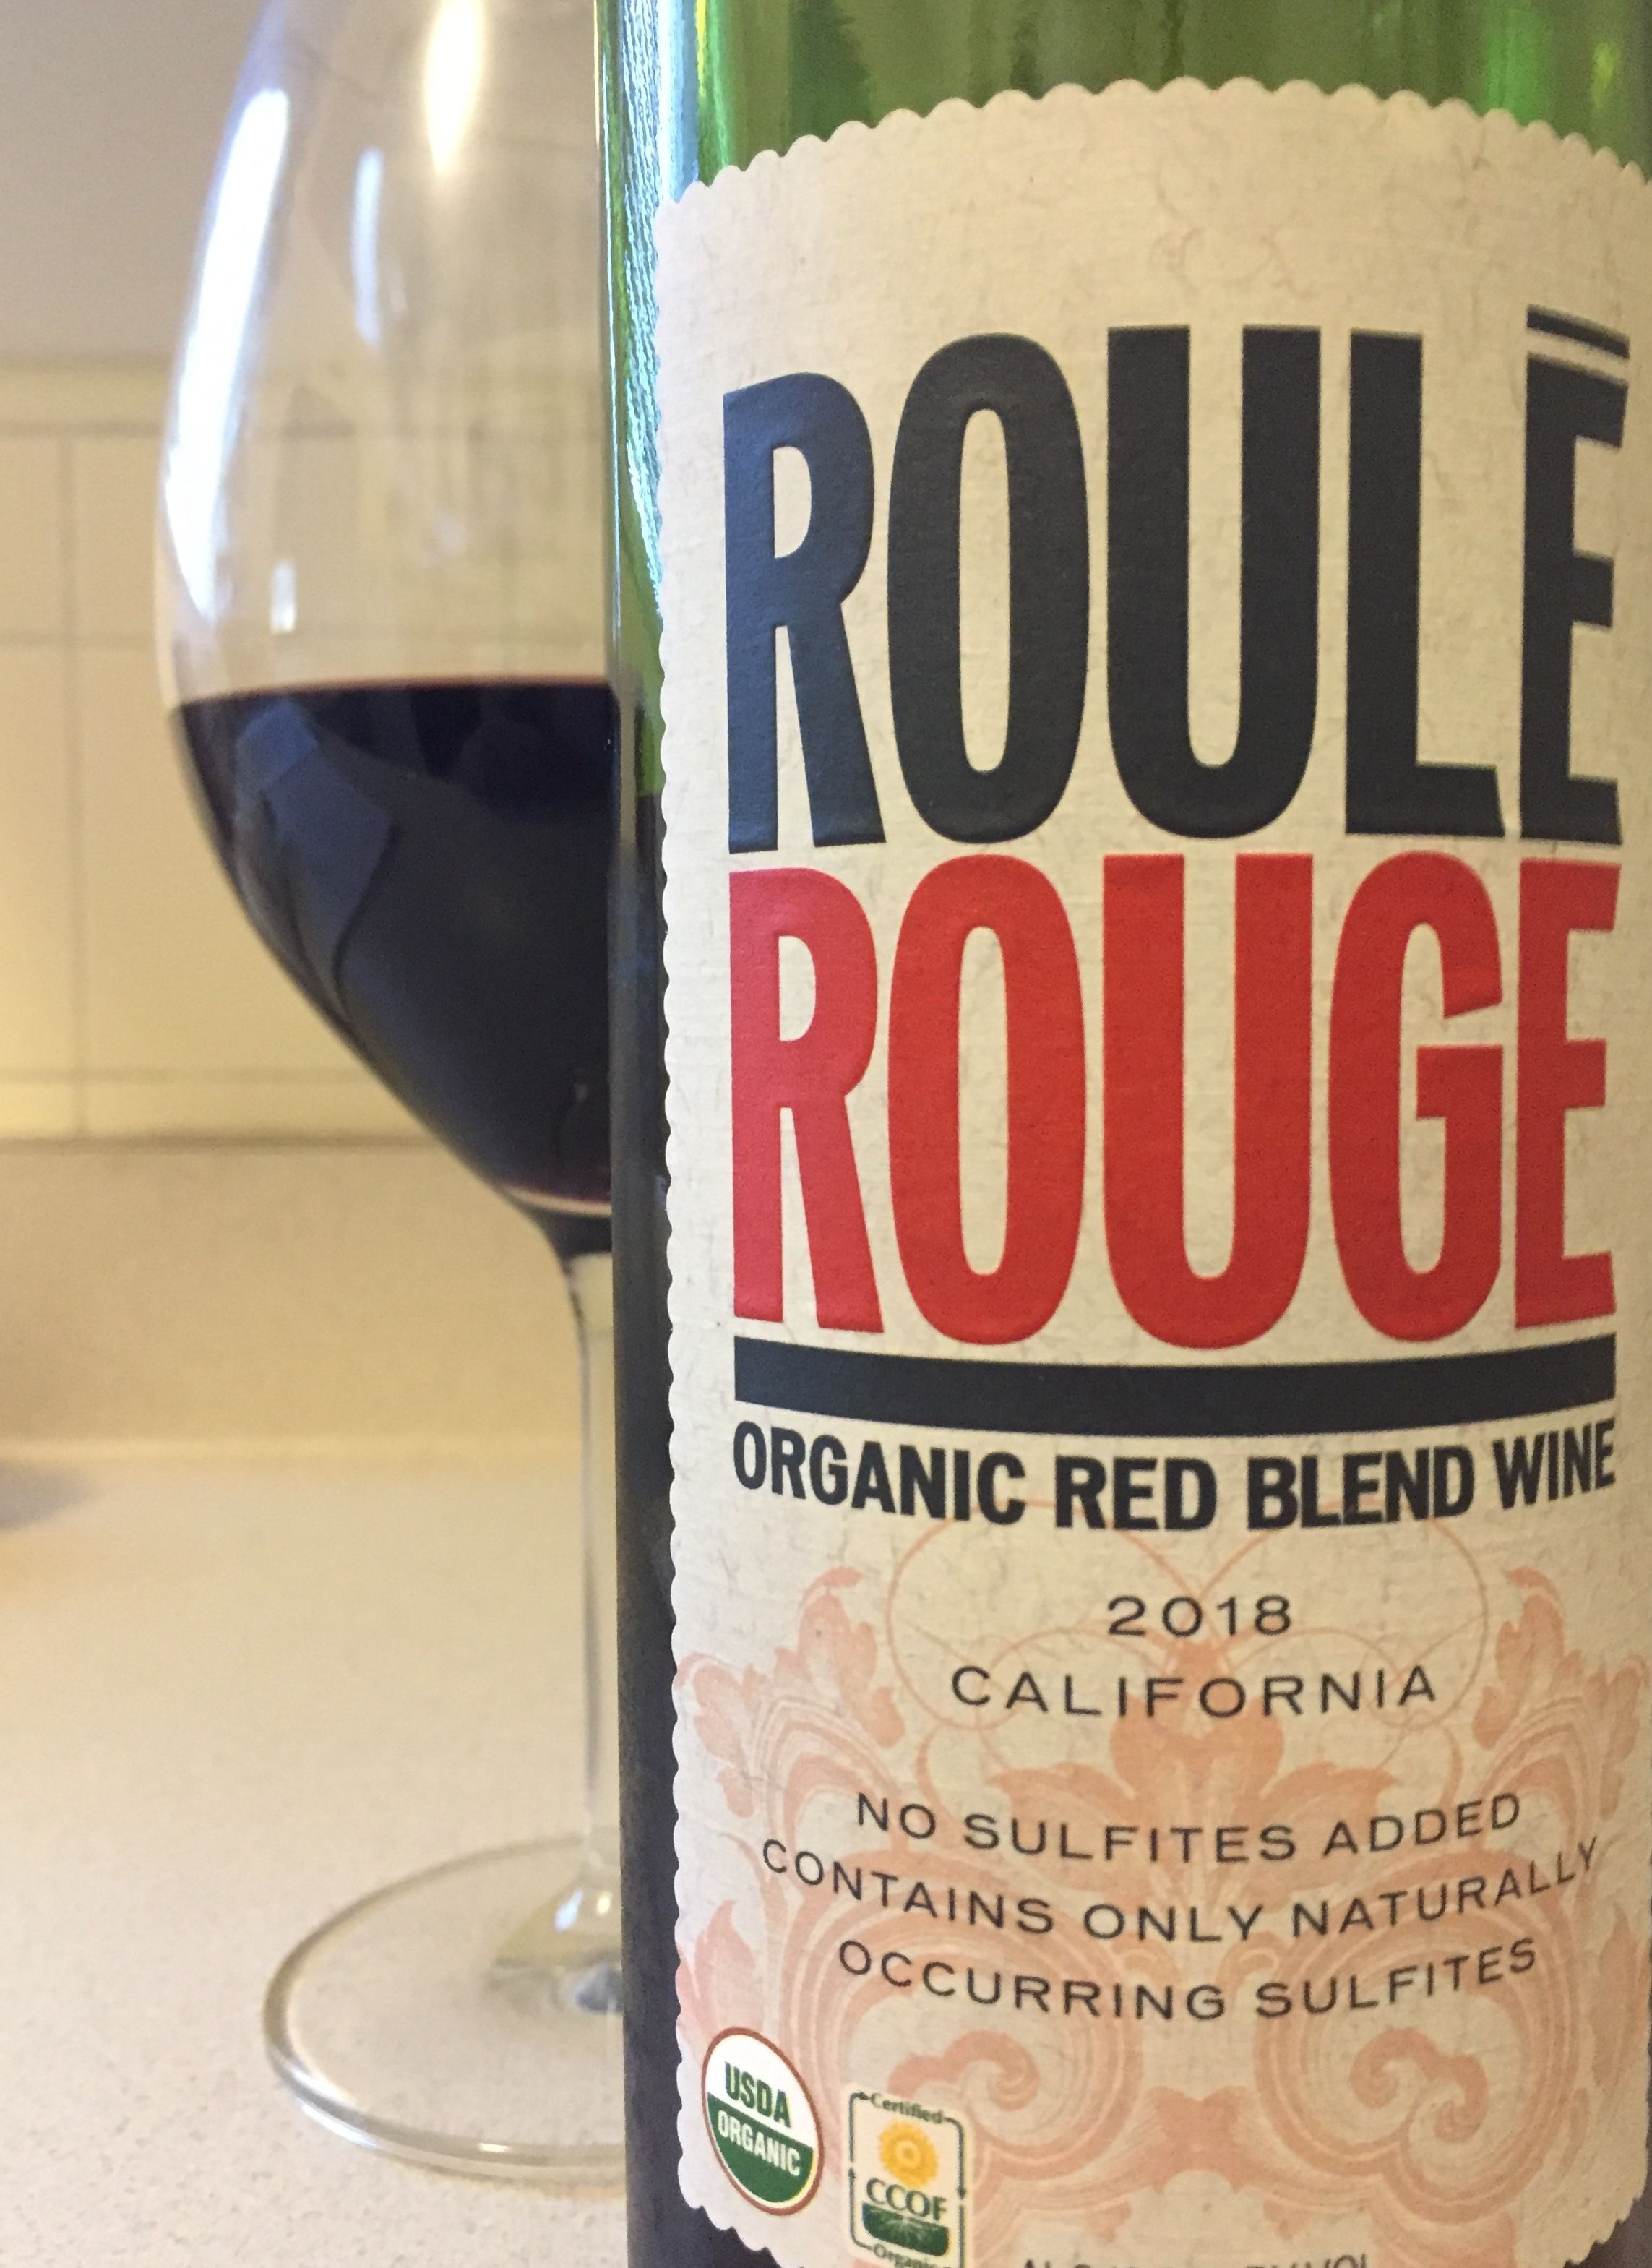 Roule Rouge 2018 Organic Red Blend Wine California Red Blend Wine Tito S Vodka Bottle Vodka Bottle